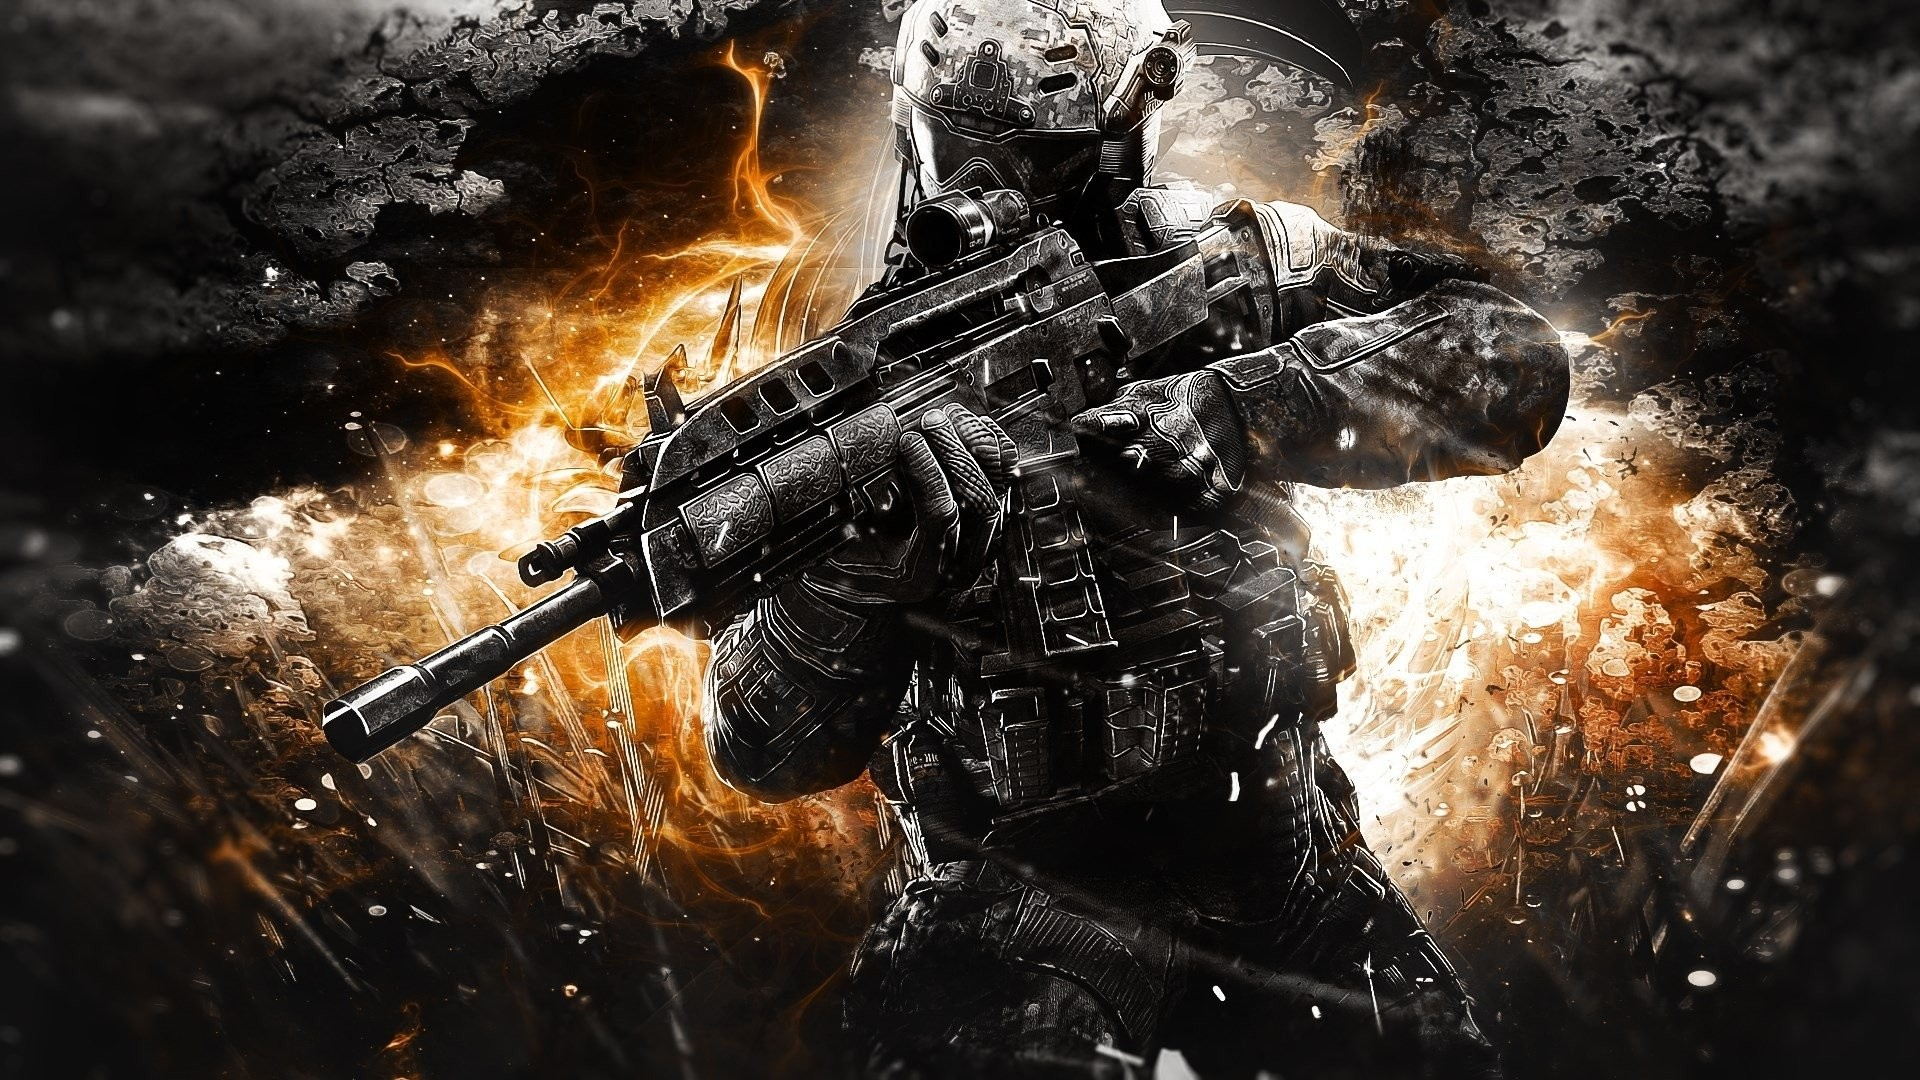 Call Of Duty Wallpapers Black Ops 2 Wallpapers) – HD Wallpapers